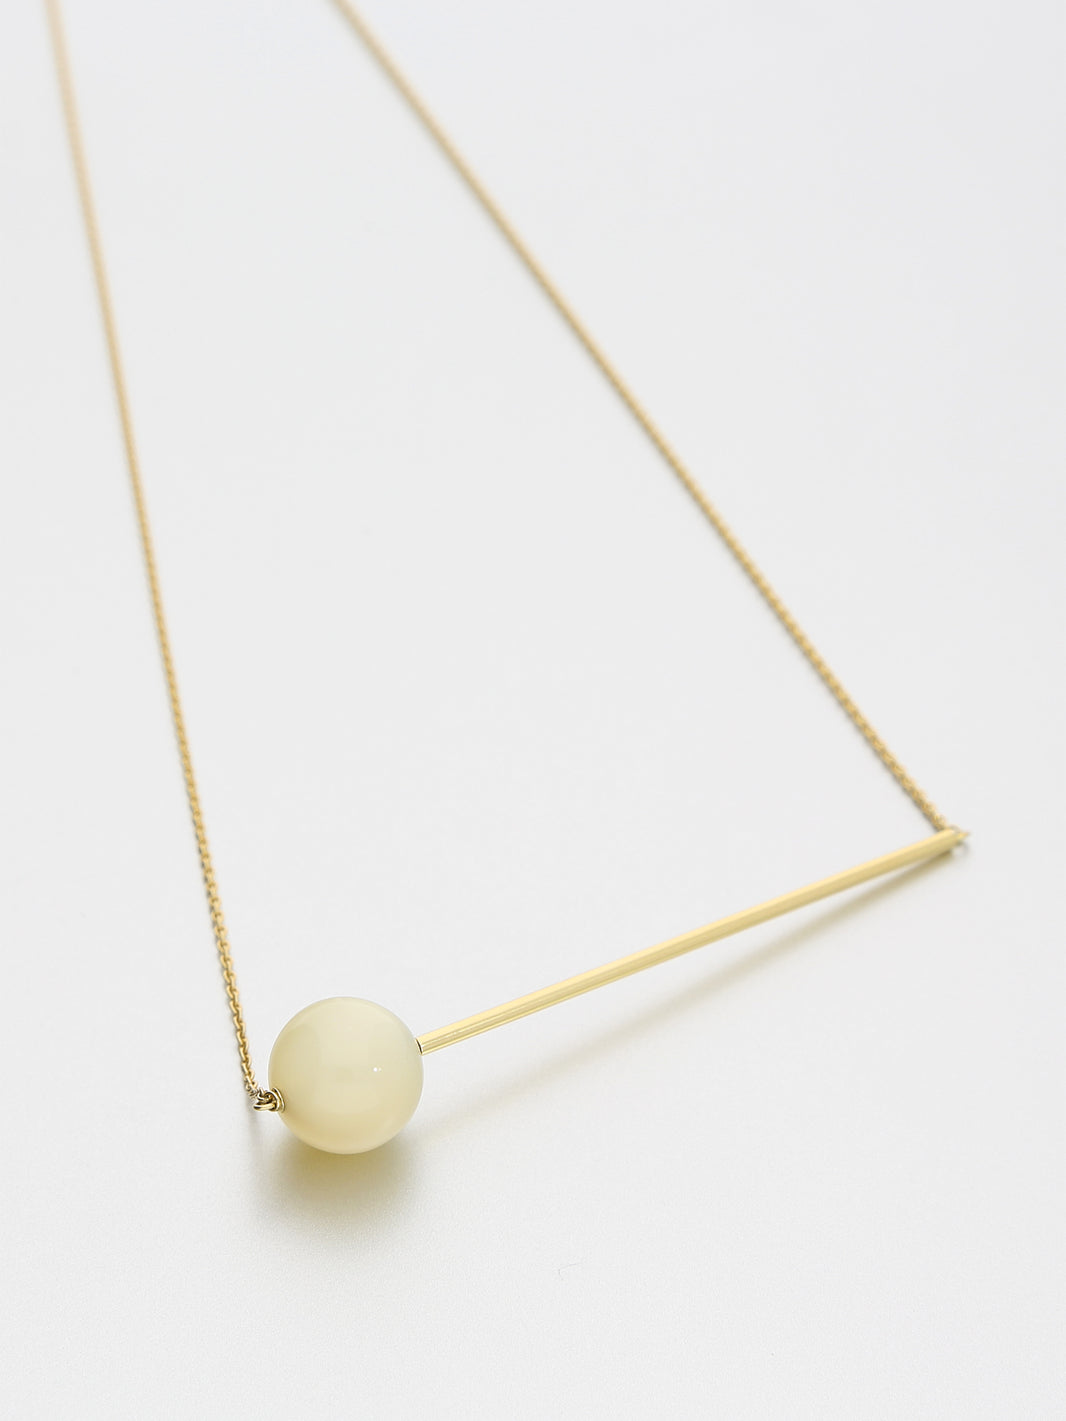 Abacus Moonstone Necklace, Yellow gold Full moon, white moonstone 12 mm